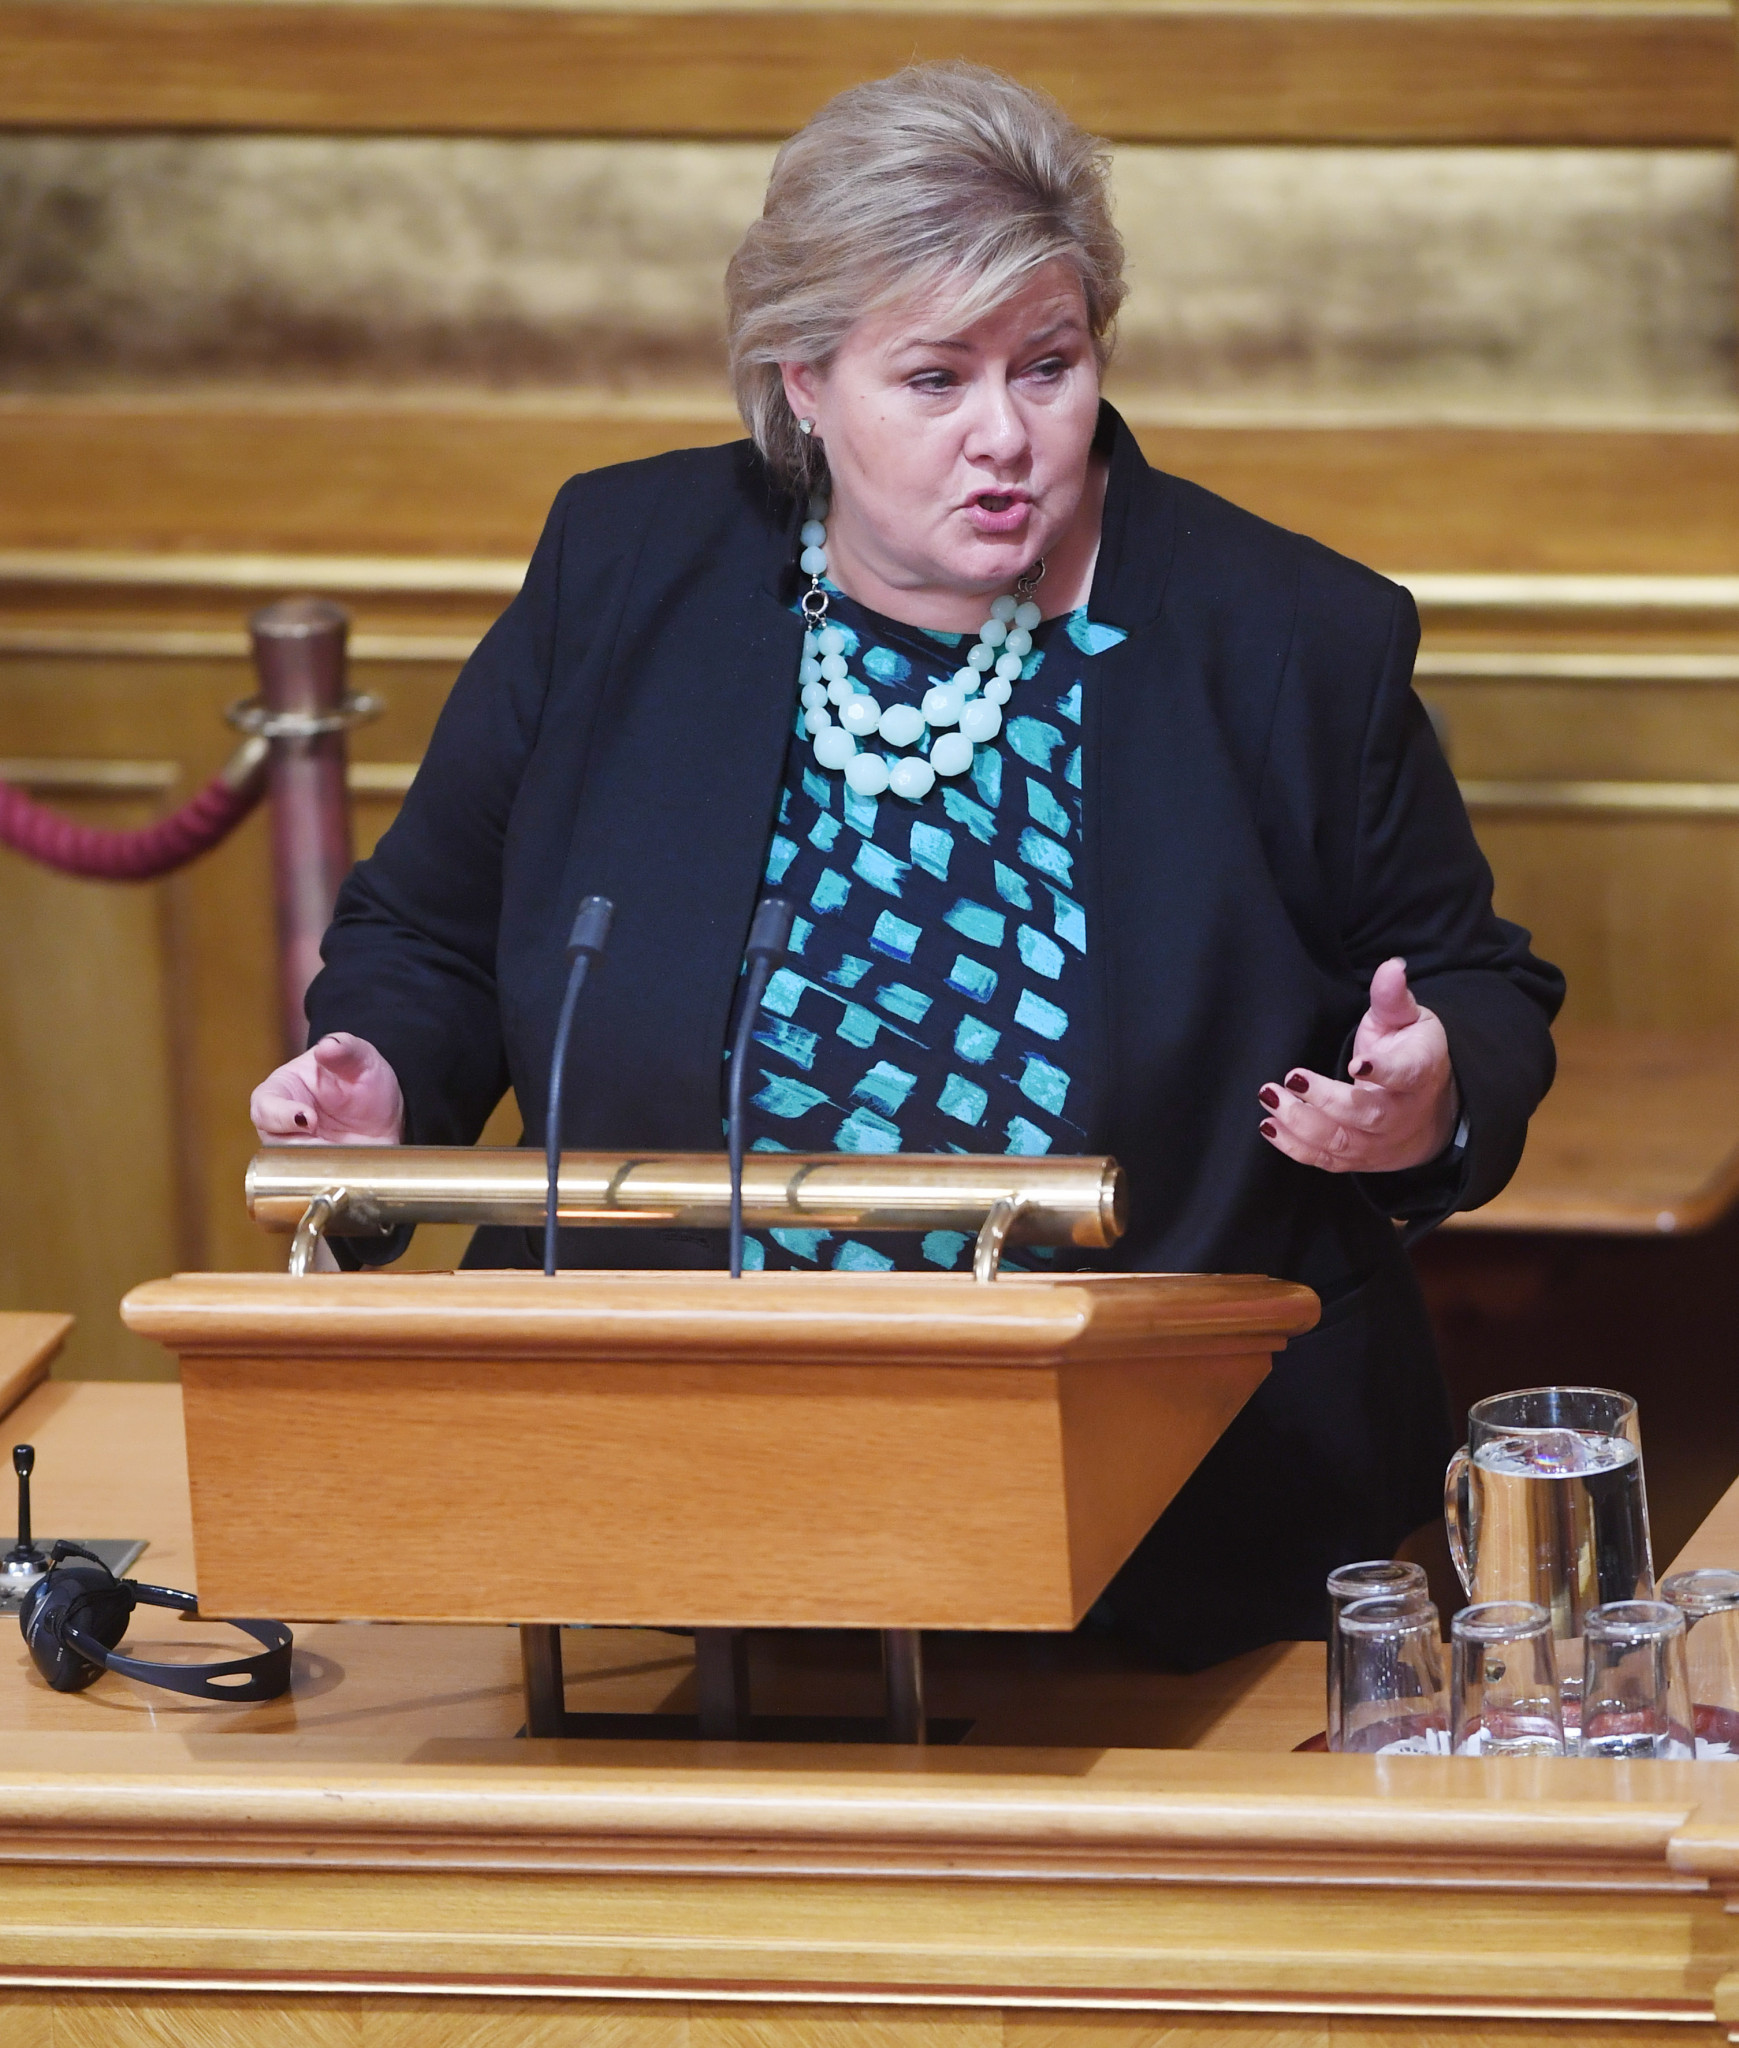 Norwegian Prime Minister Erna Solberg has given her full support to Linda Helleland's bid ©Getty Images